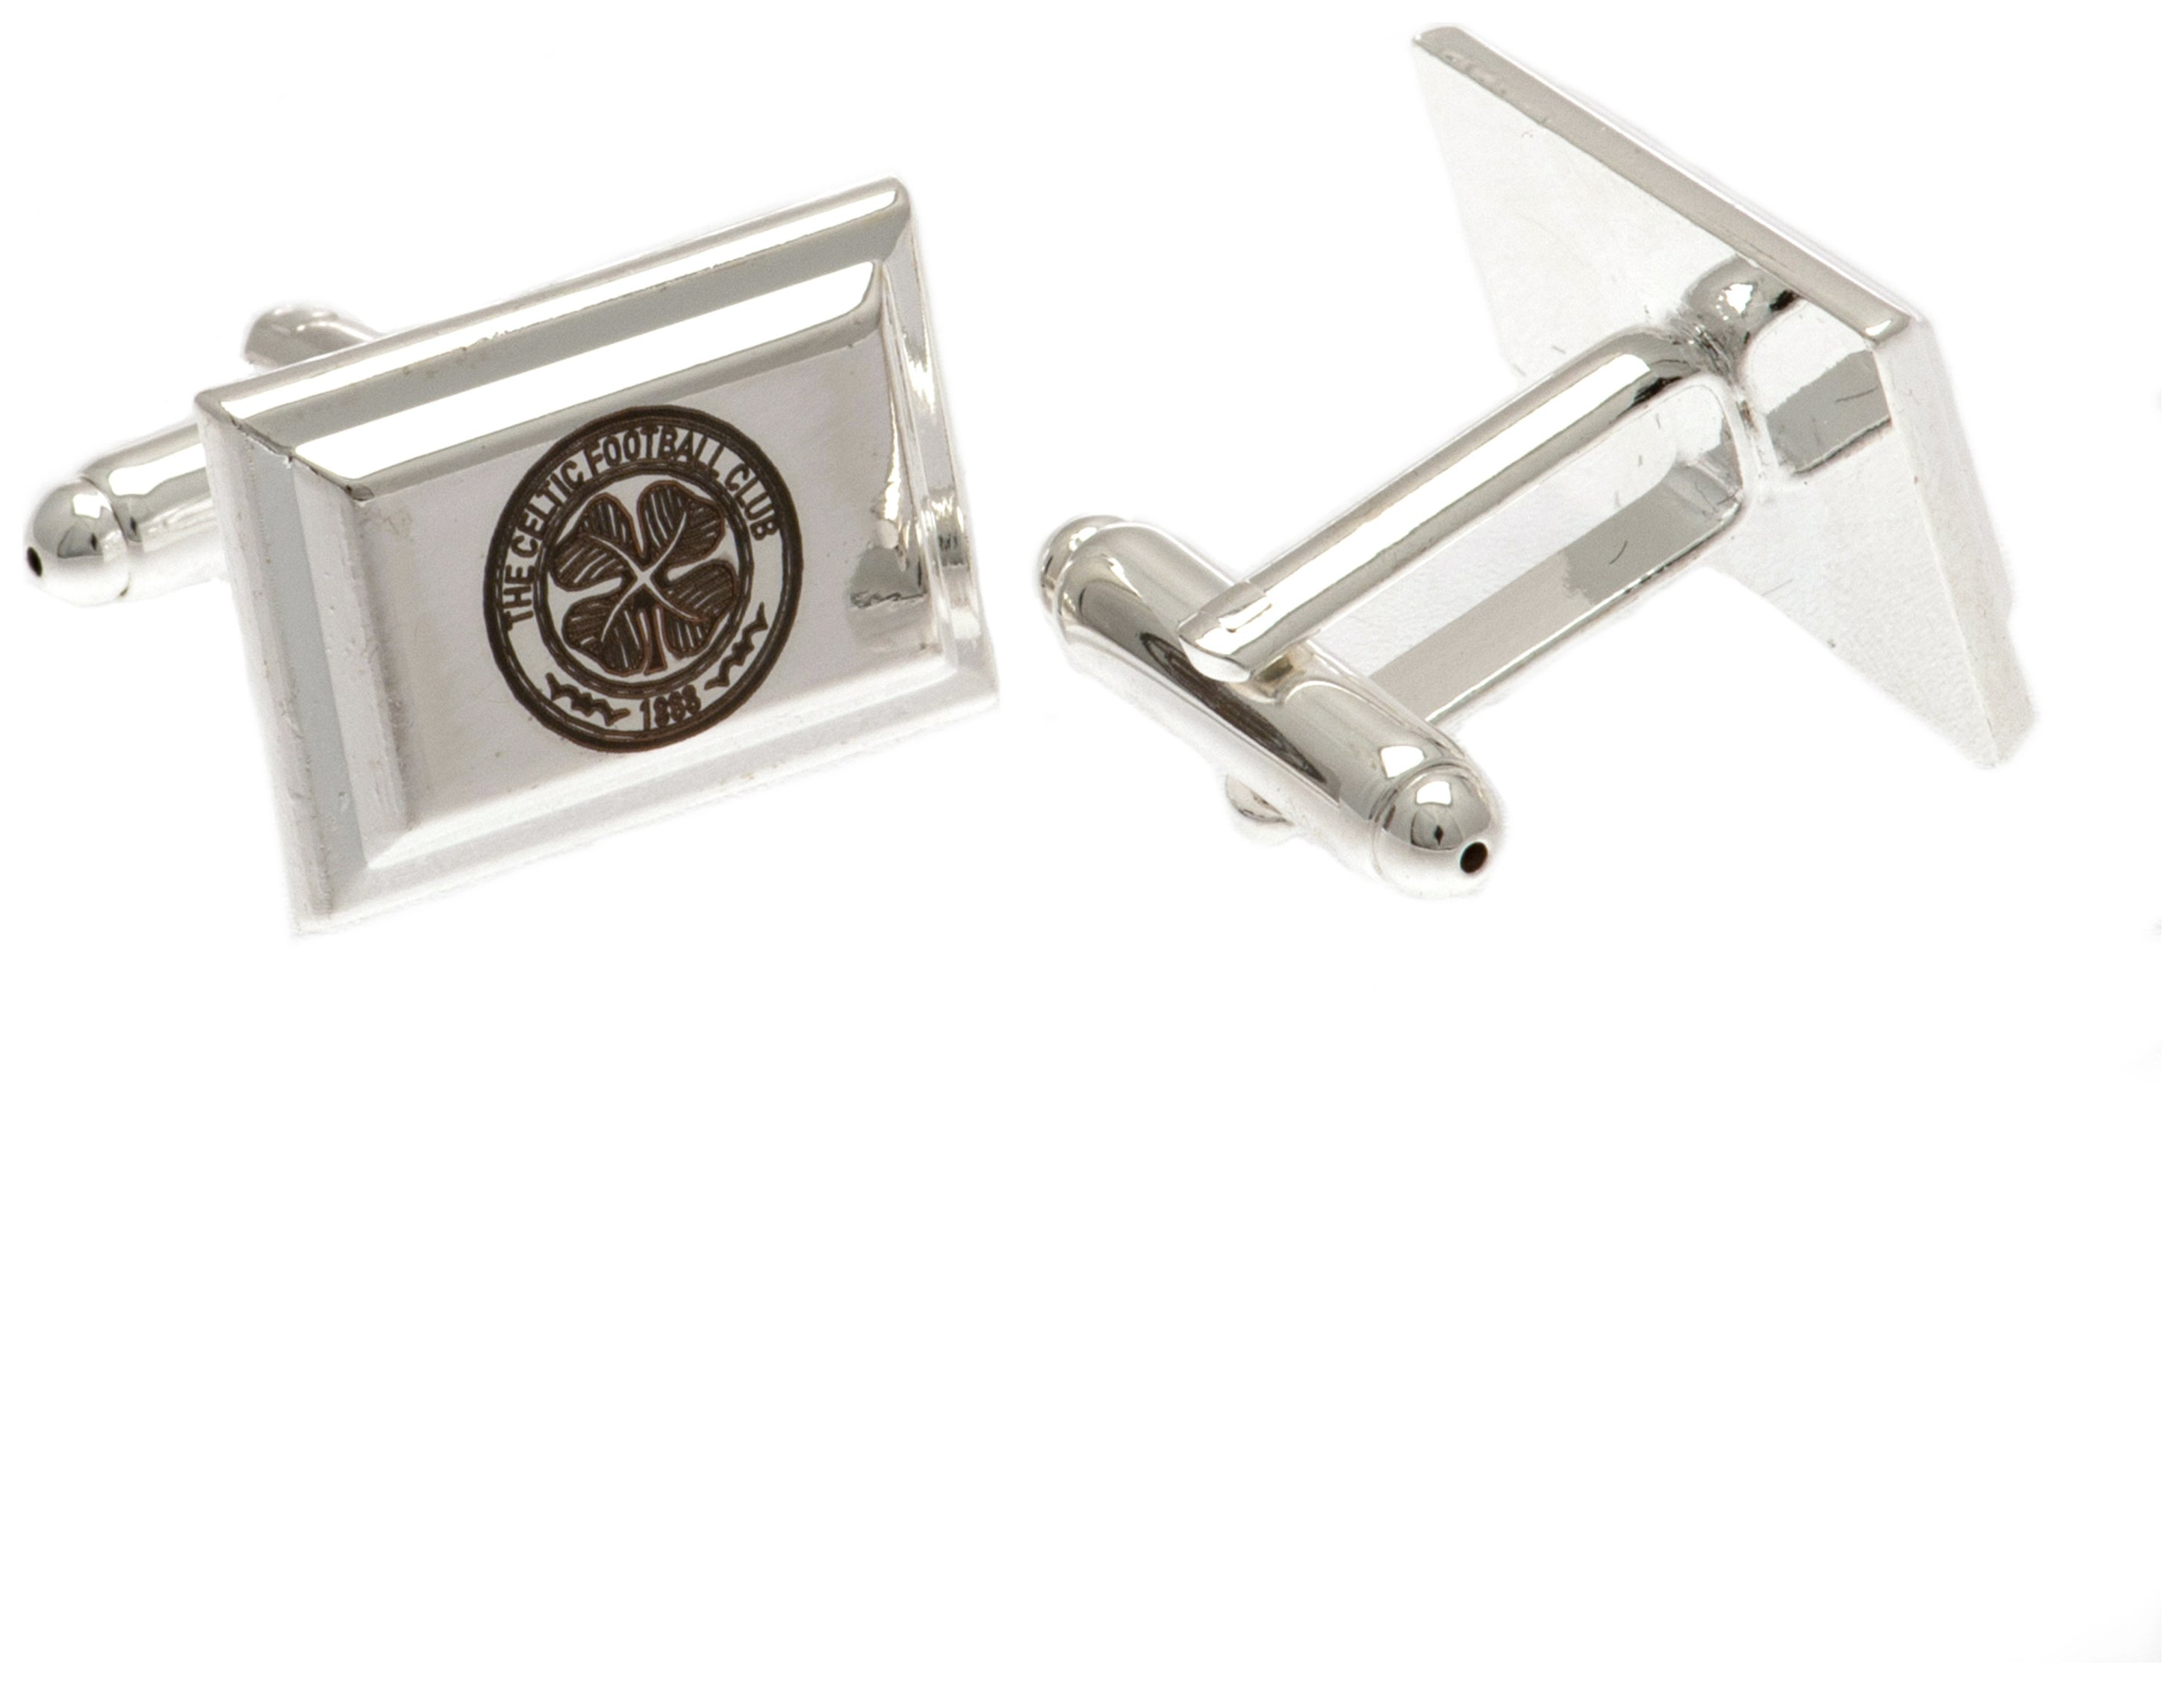 Image of Silver Plated Celtic FC Crest Cufflinks.